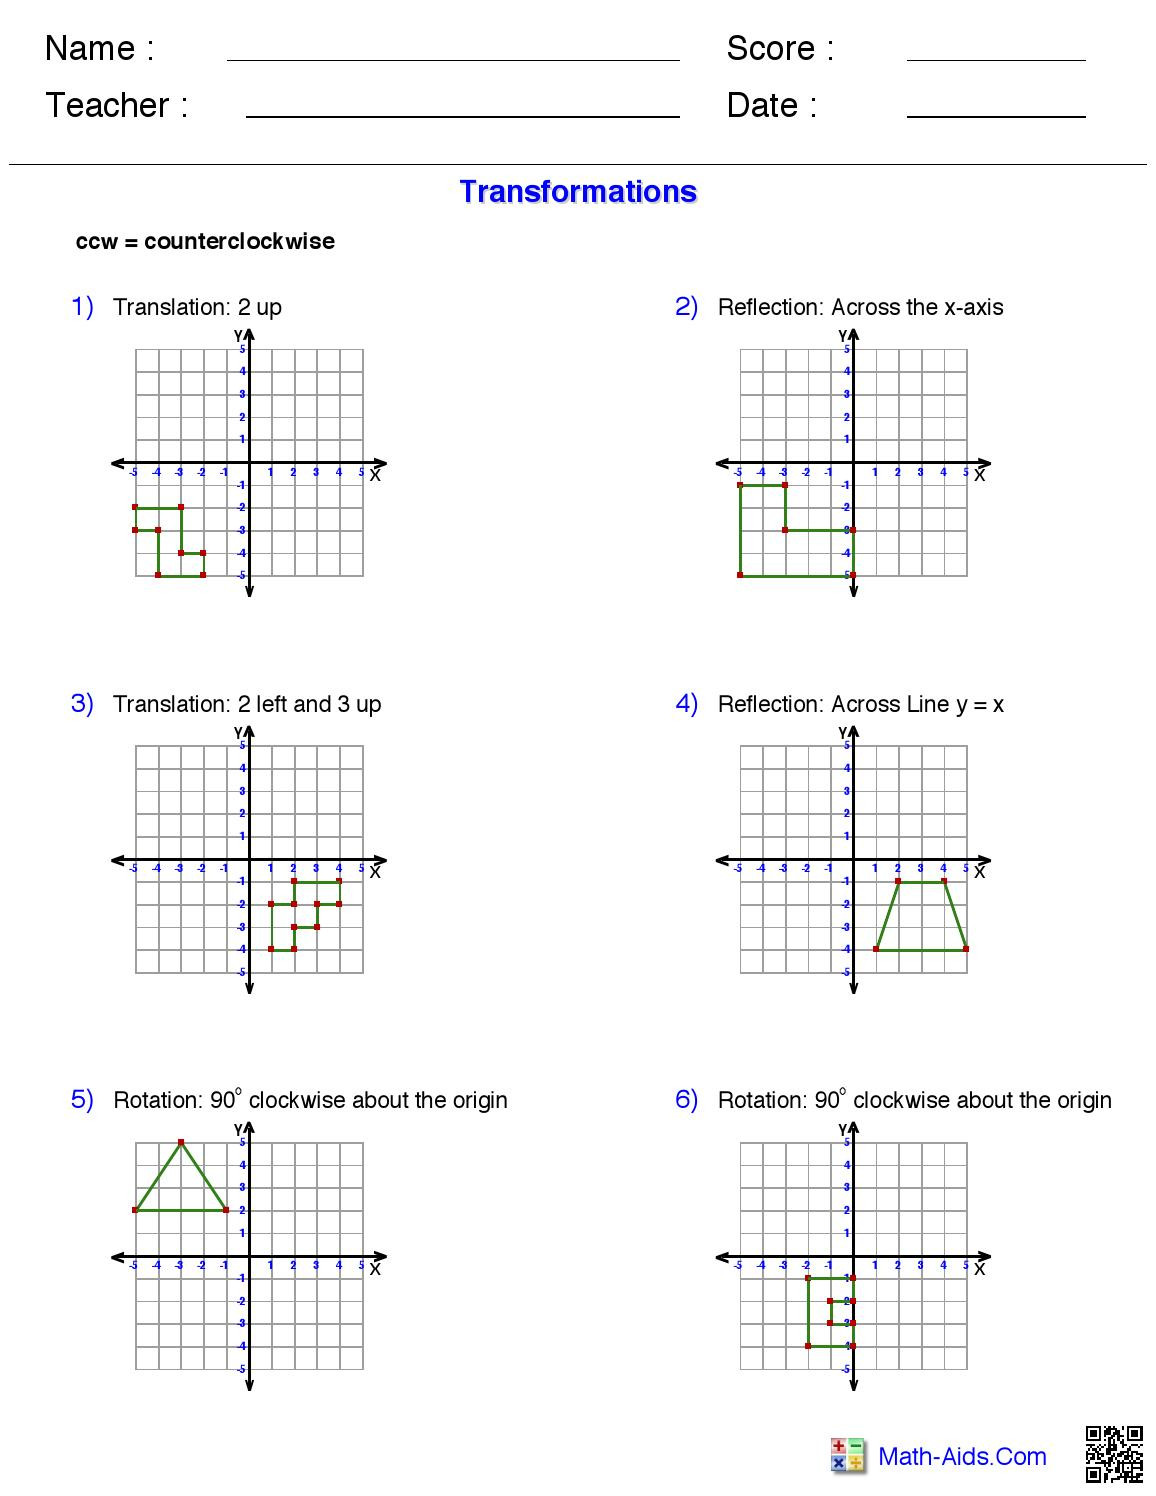 Transformations Work Sheet from Math Aids by Morgan Aue